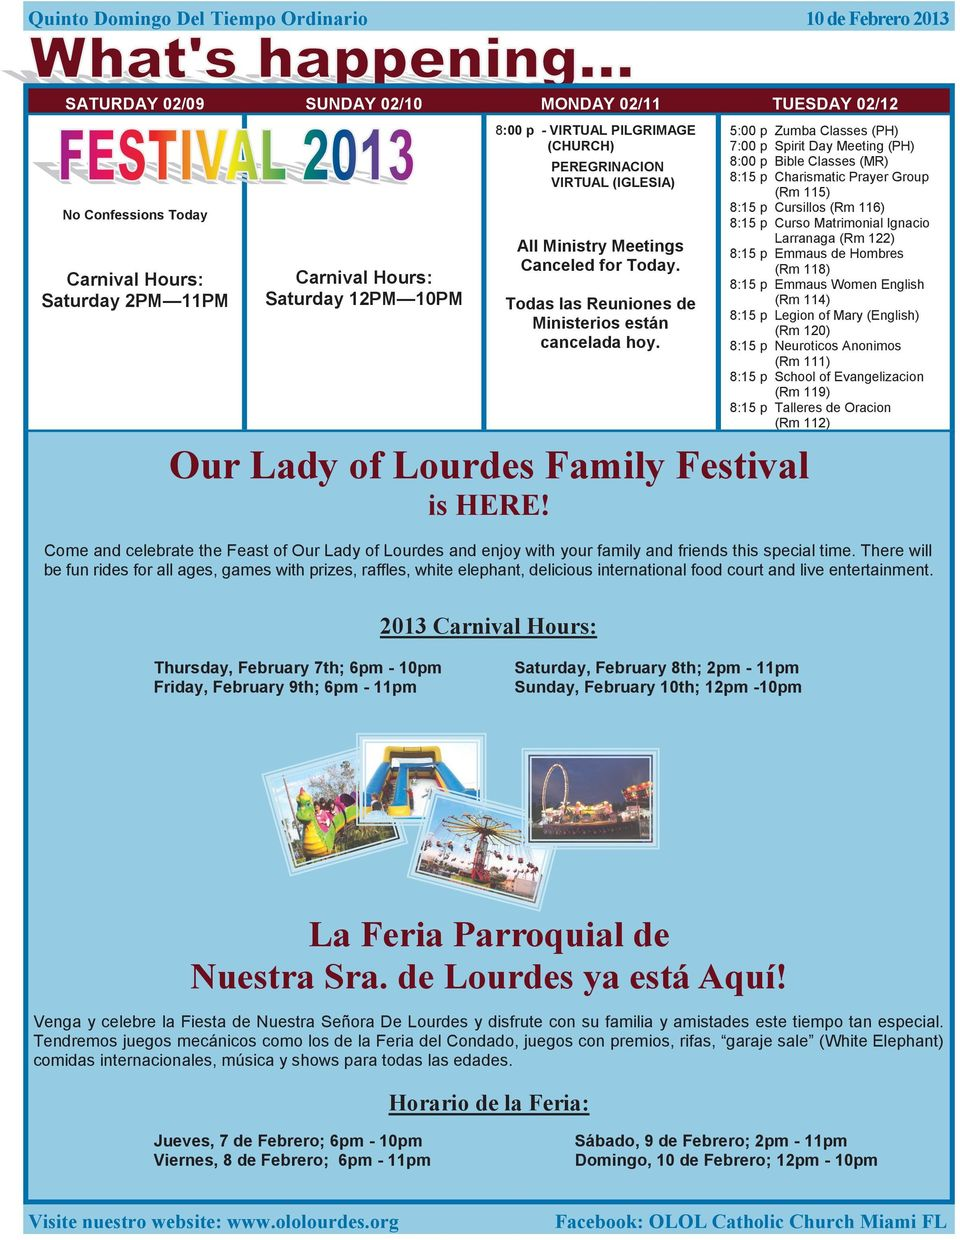 Our Lady of Lourdes Family Festival is HERE!